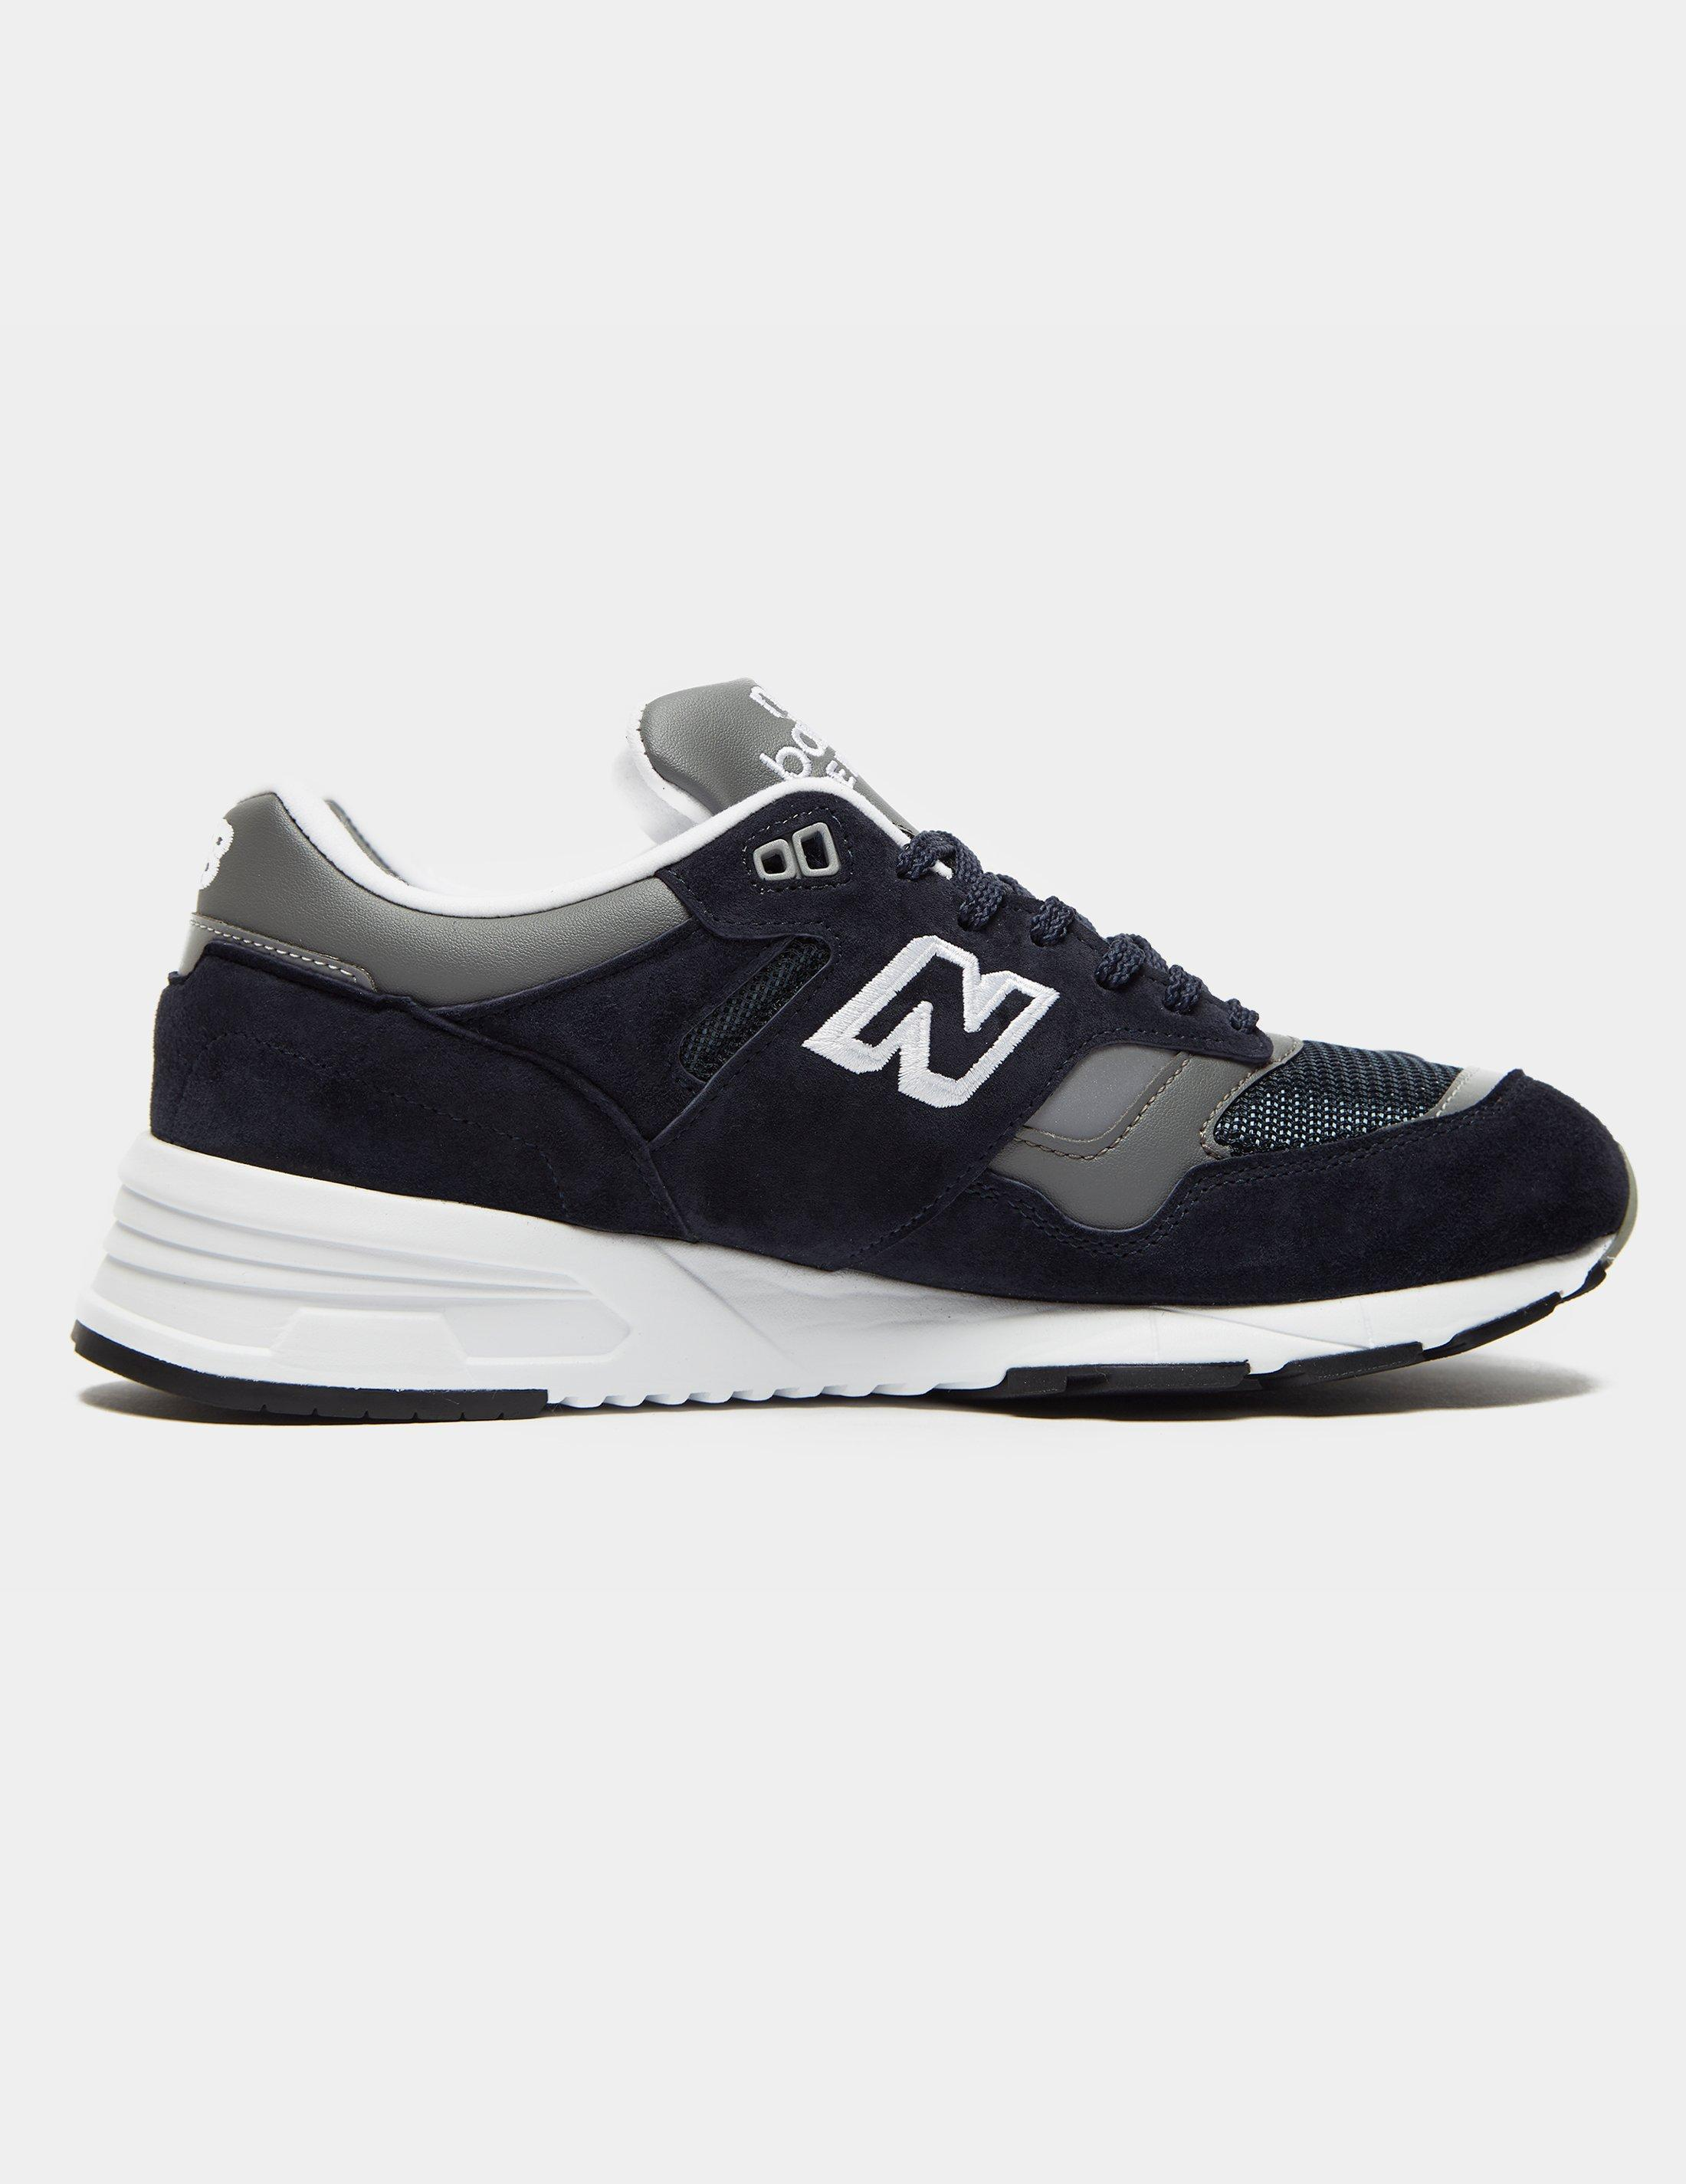 New Balance M1530 Navy Blue for men